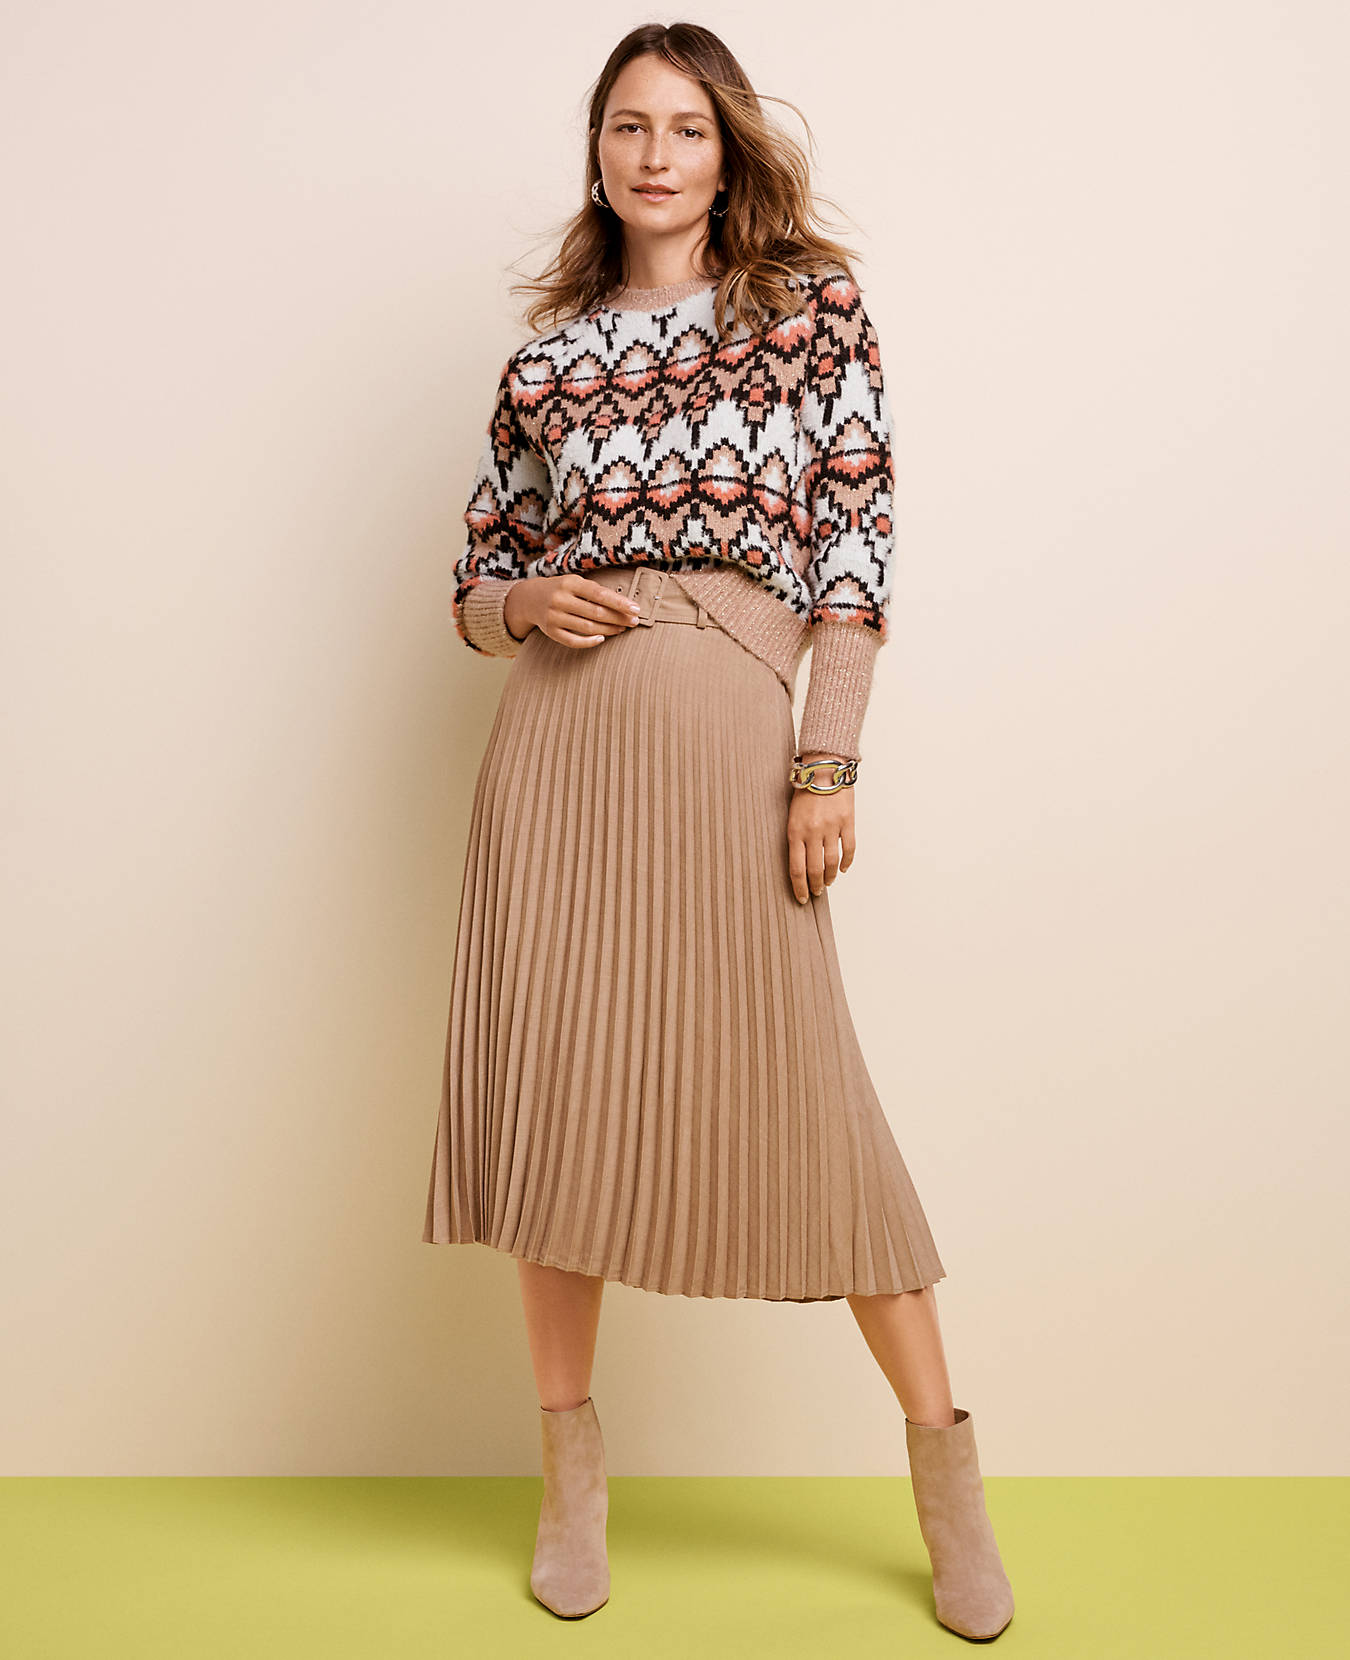 LIMITED TIME ONLY! ANN TAYLOR CLEARANCE ADDITIONAL 50% OFF!